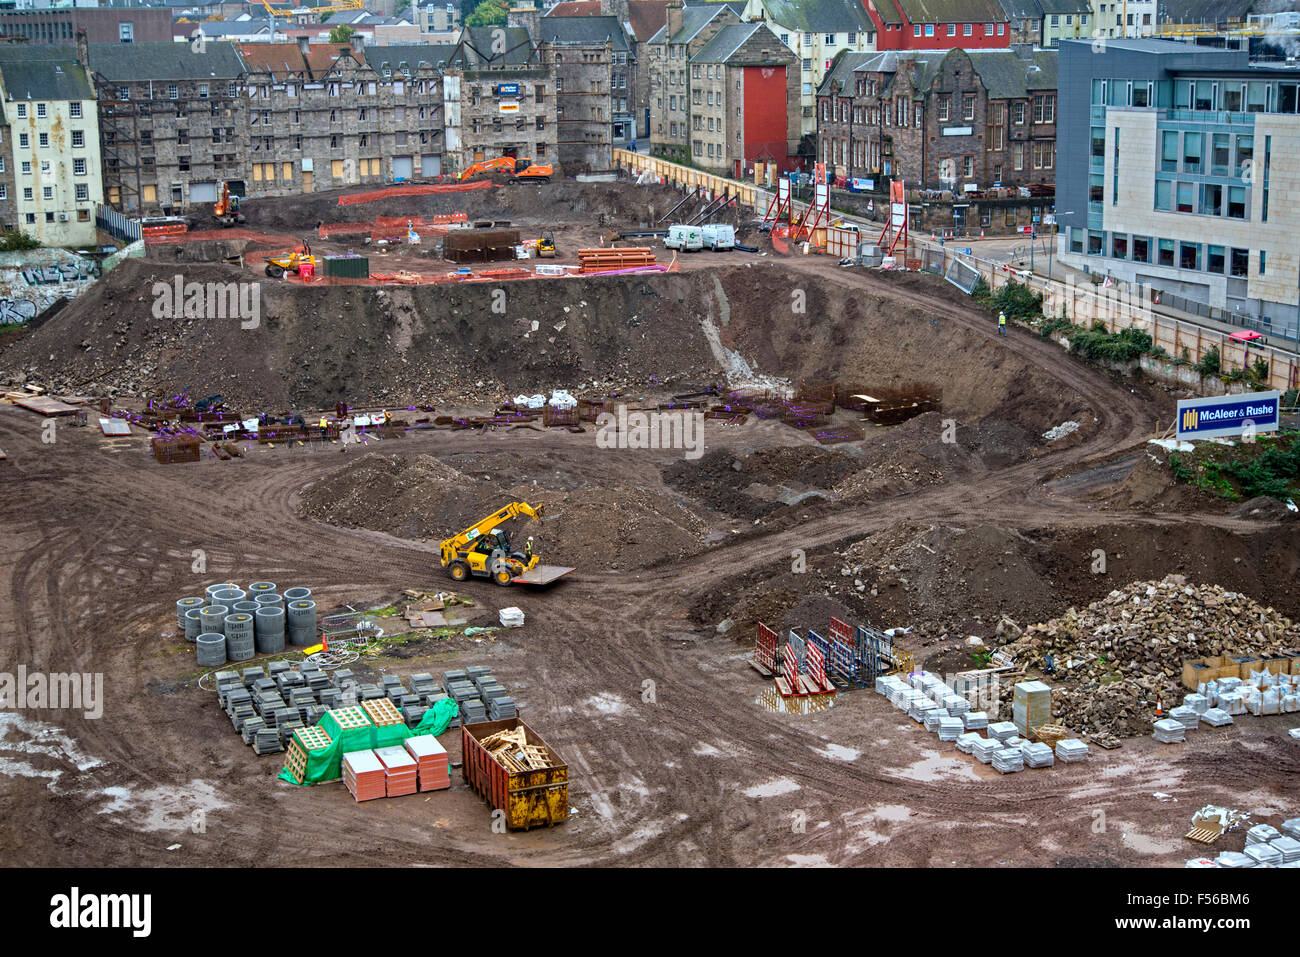 Work underway on the controversial £150m Caltongate project in Edinburgh. - Stock Image